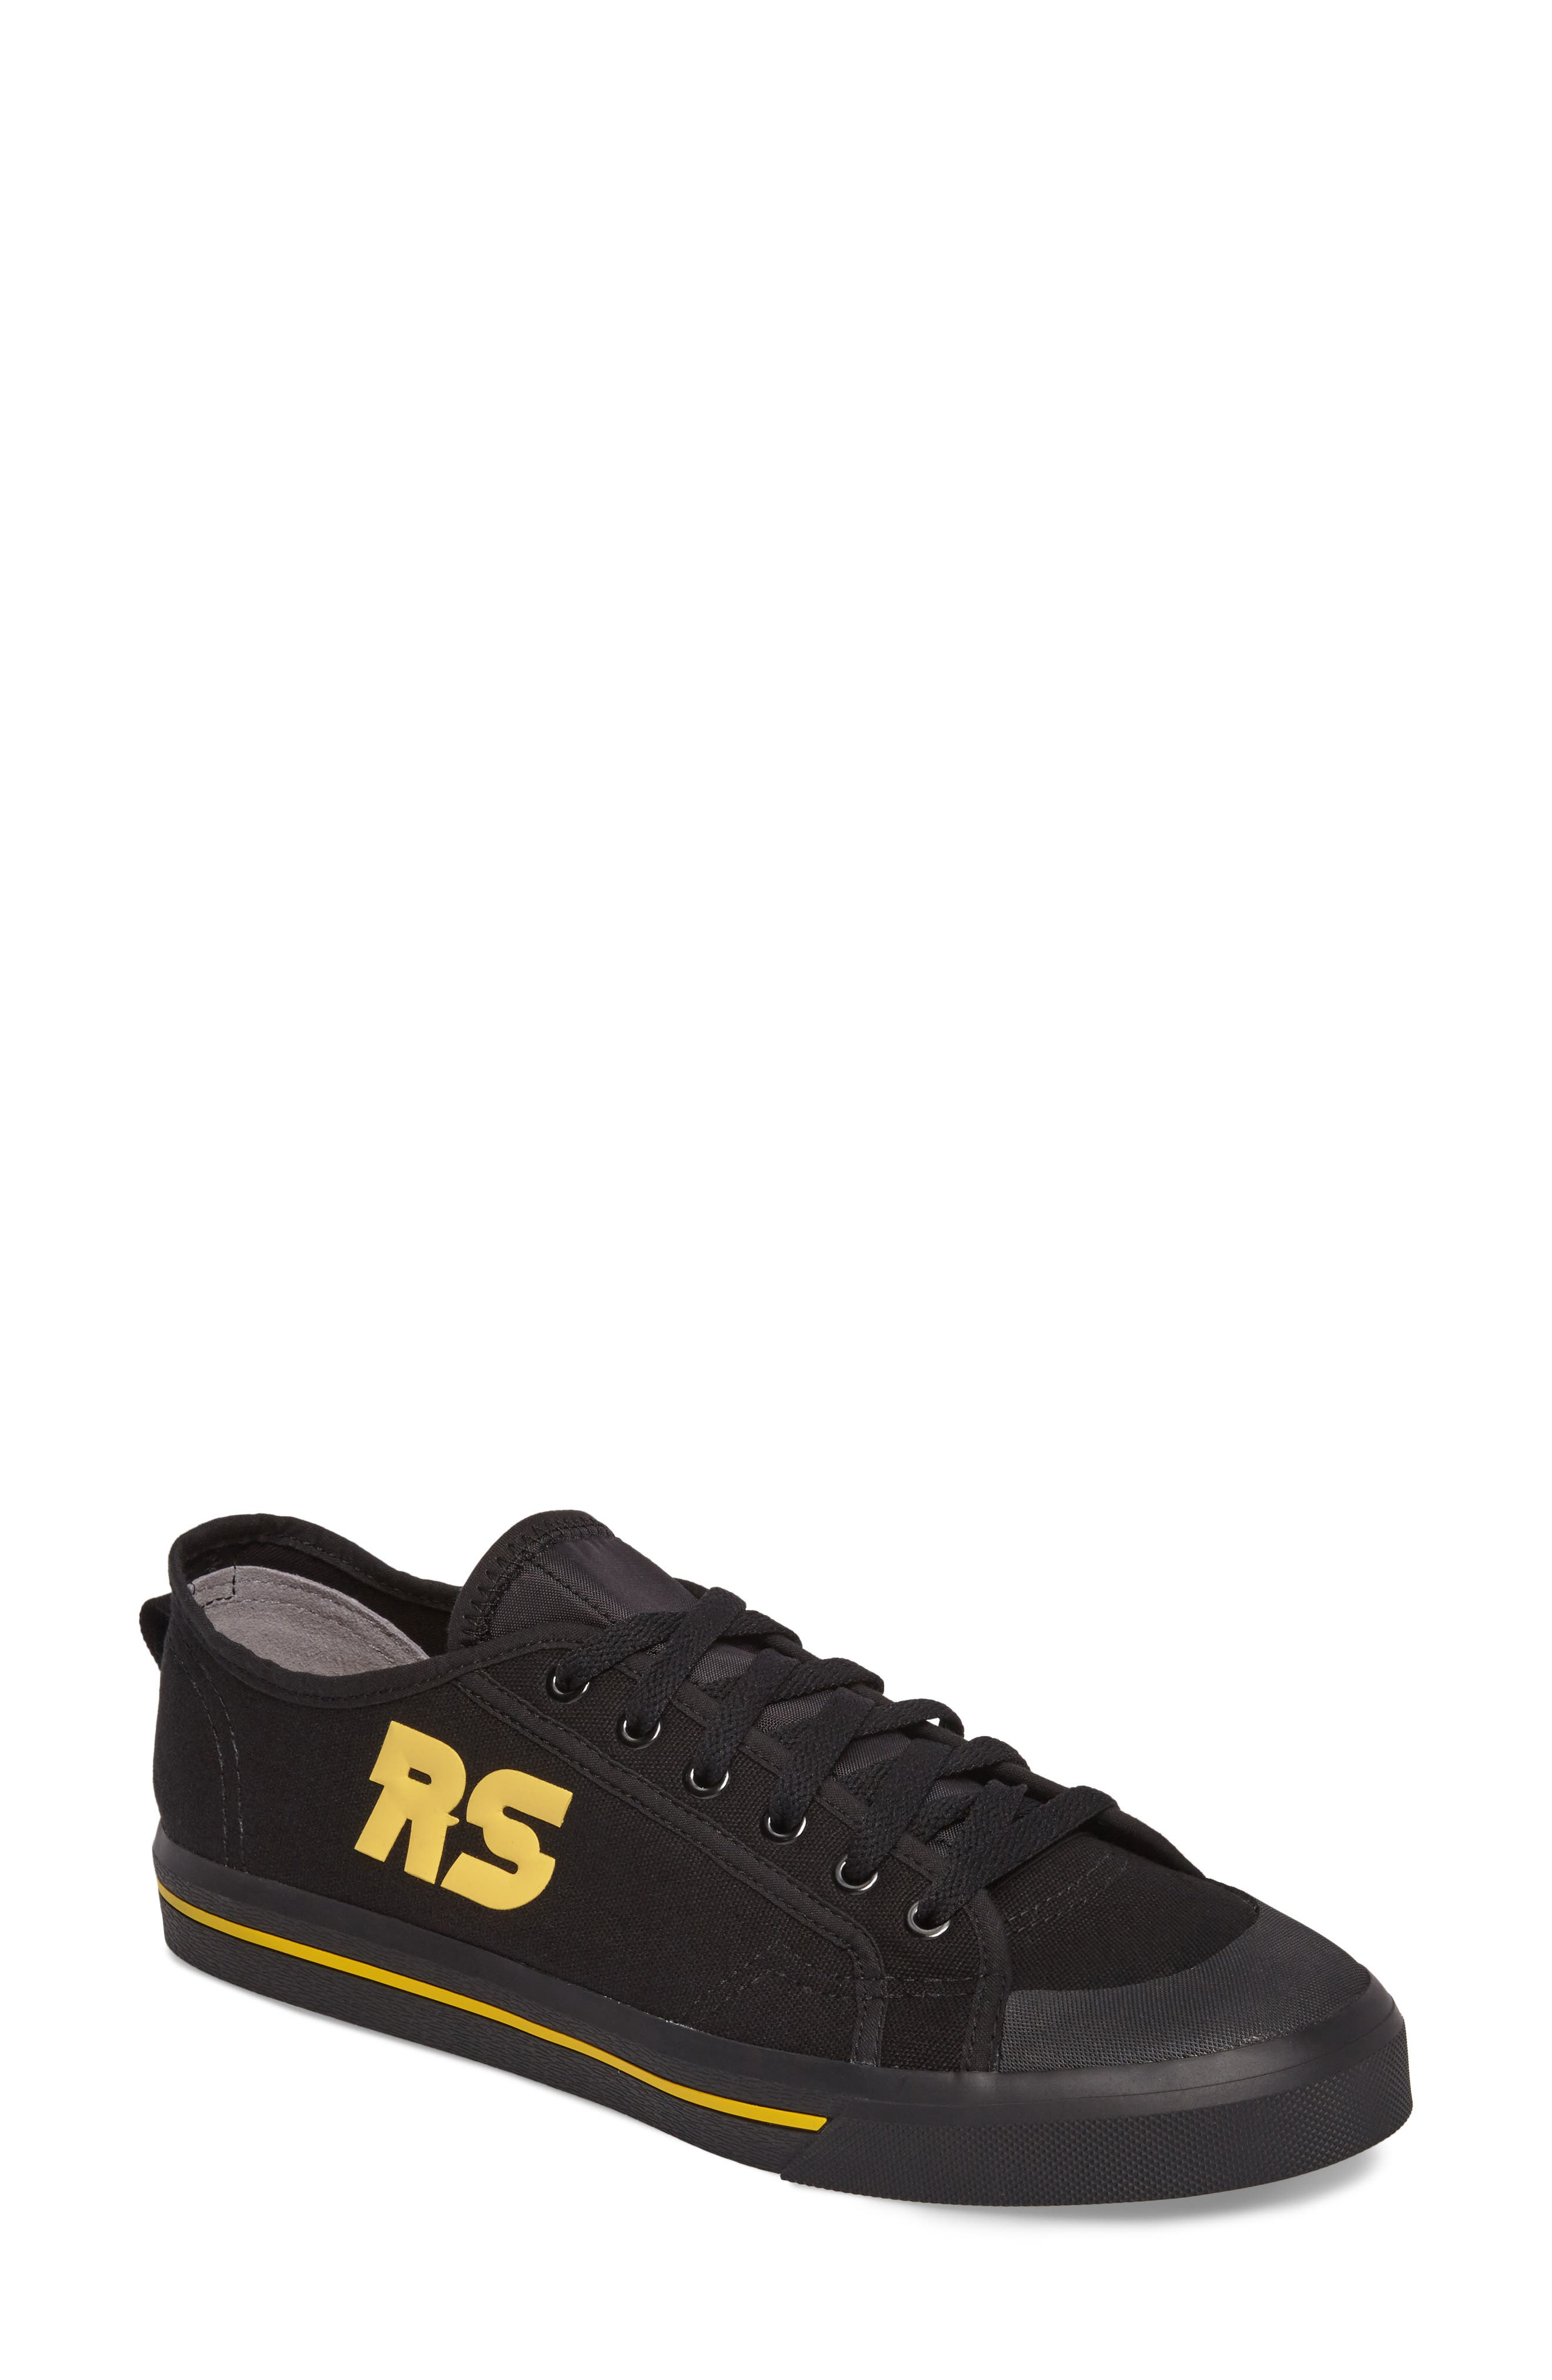 adidas by Raf Simons Spirit Low Top Sneaker,                             Main thumbnail 1, color,                             001